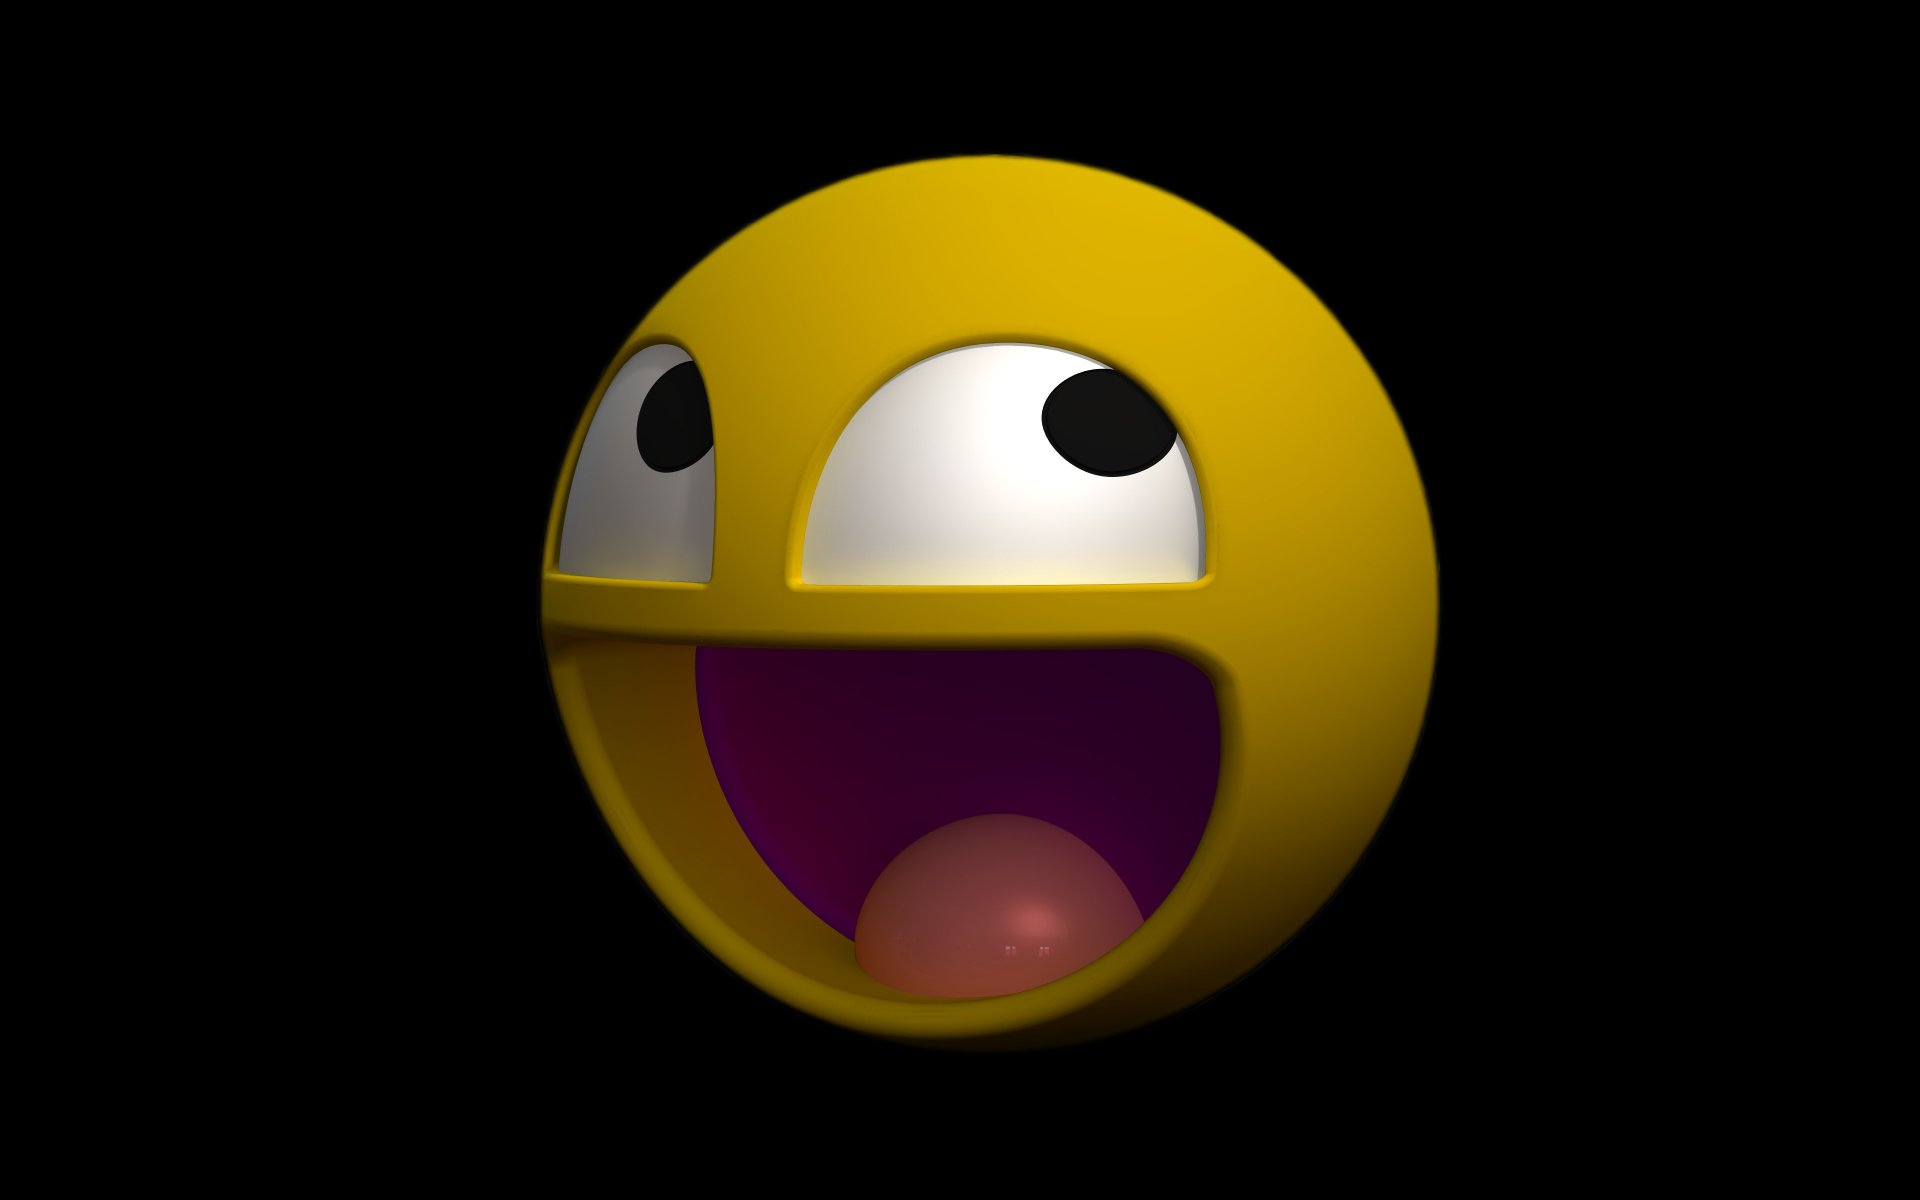 Funny Troll Face Wallpaper Funny Trollface Icon Perfect Funny 1920x1200